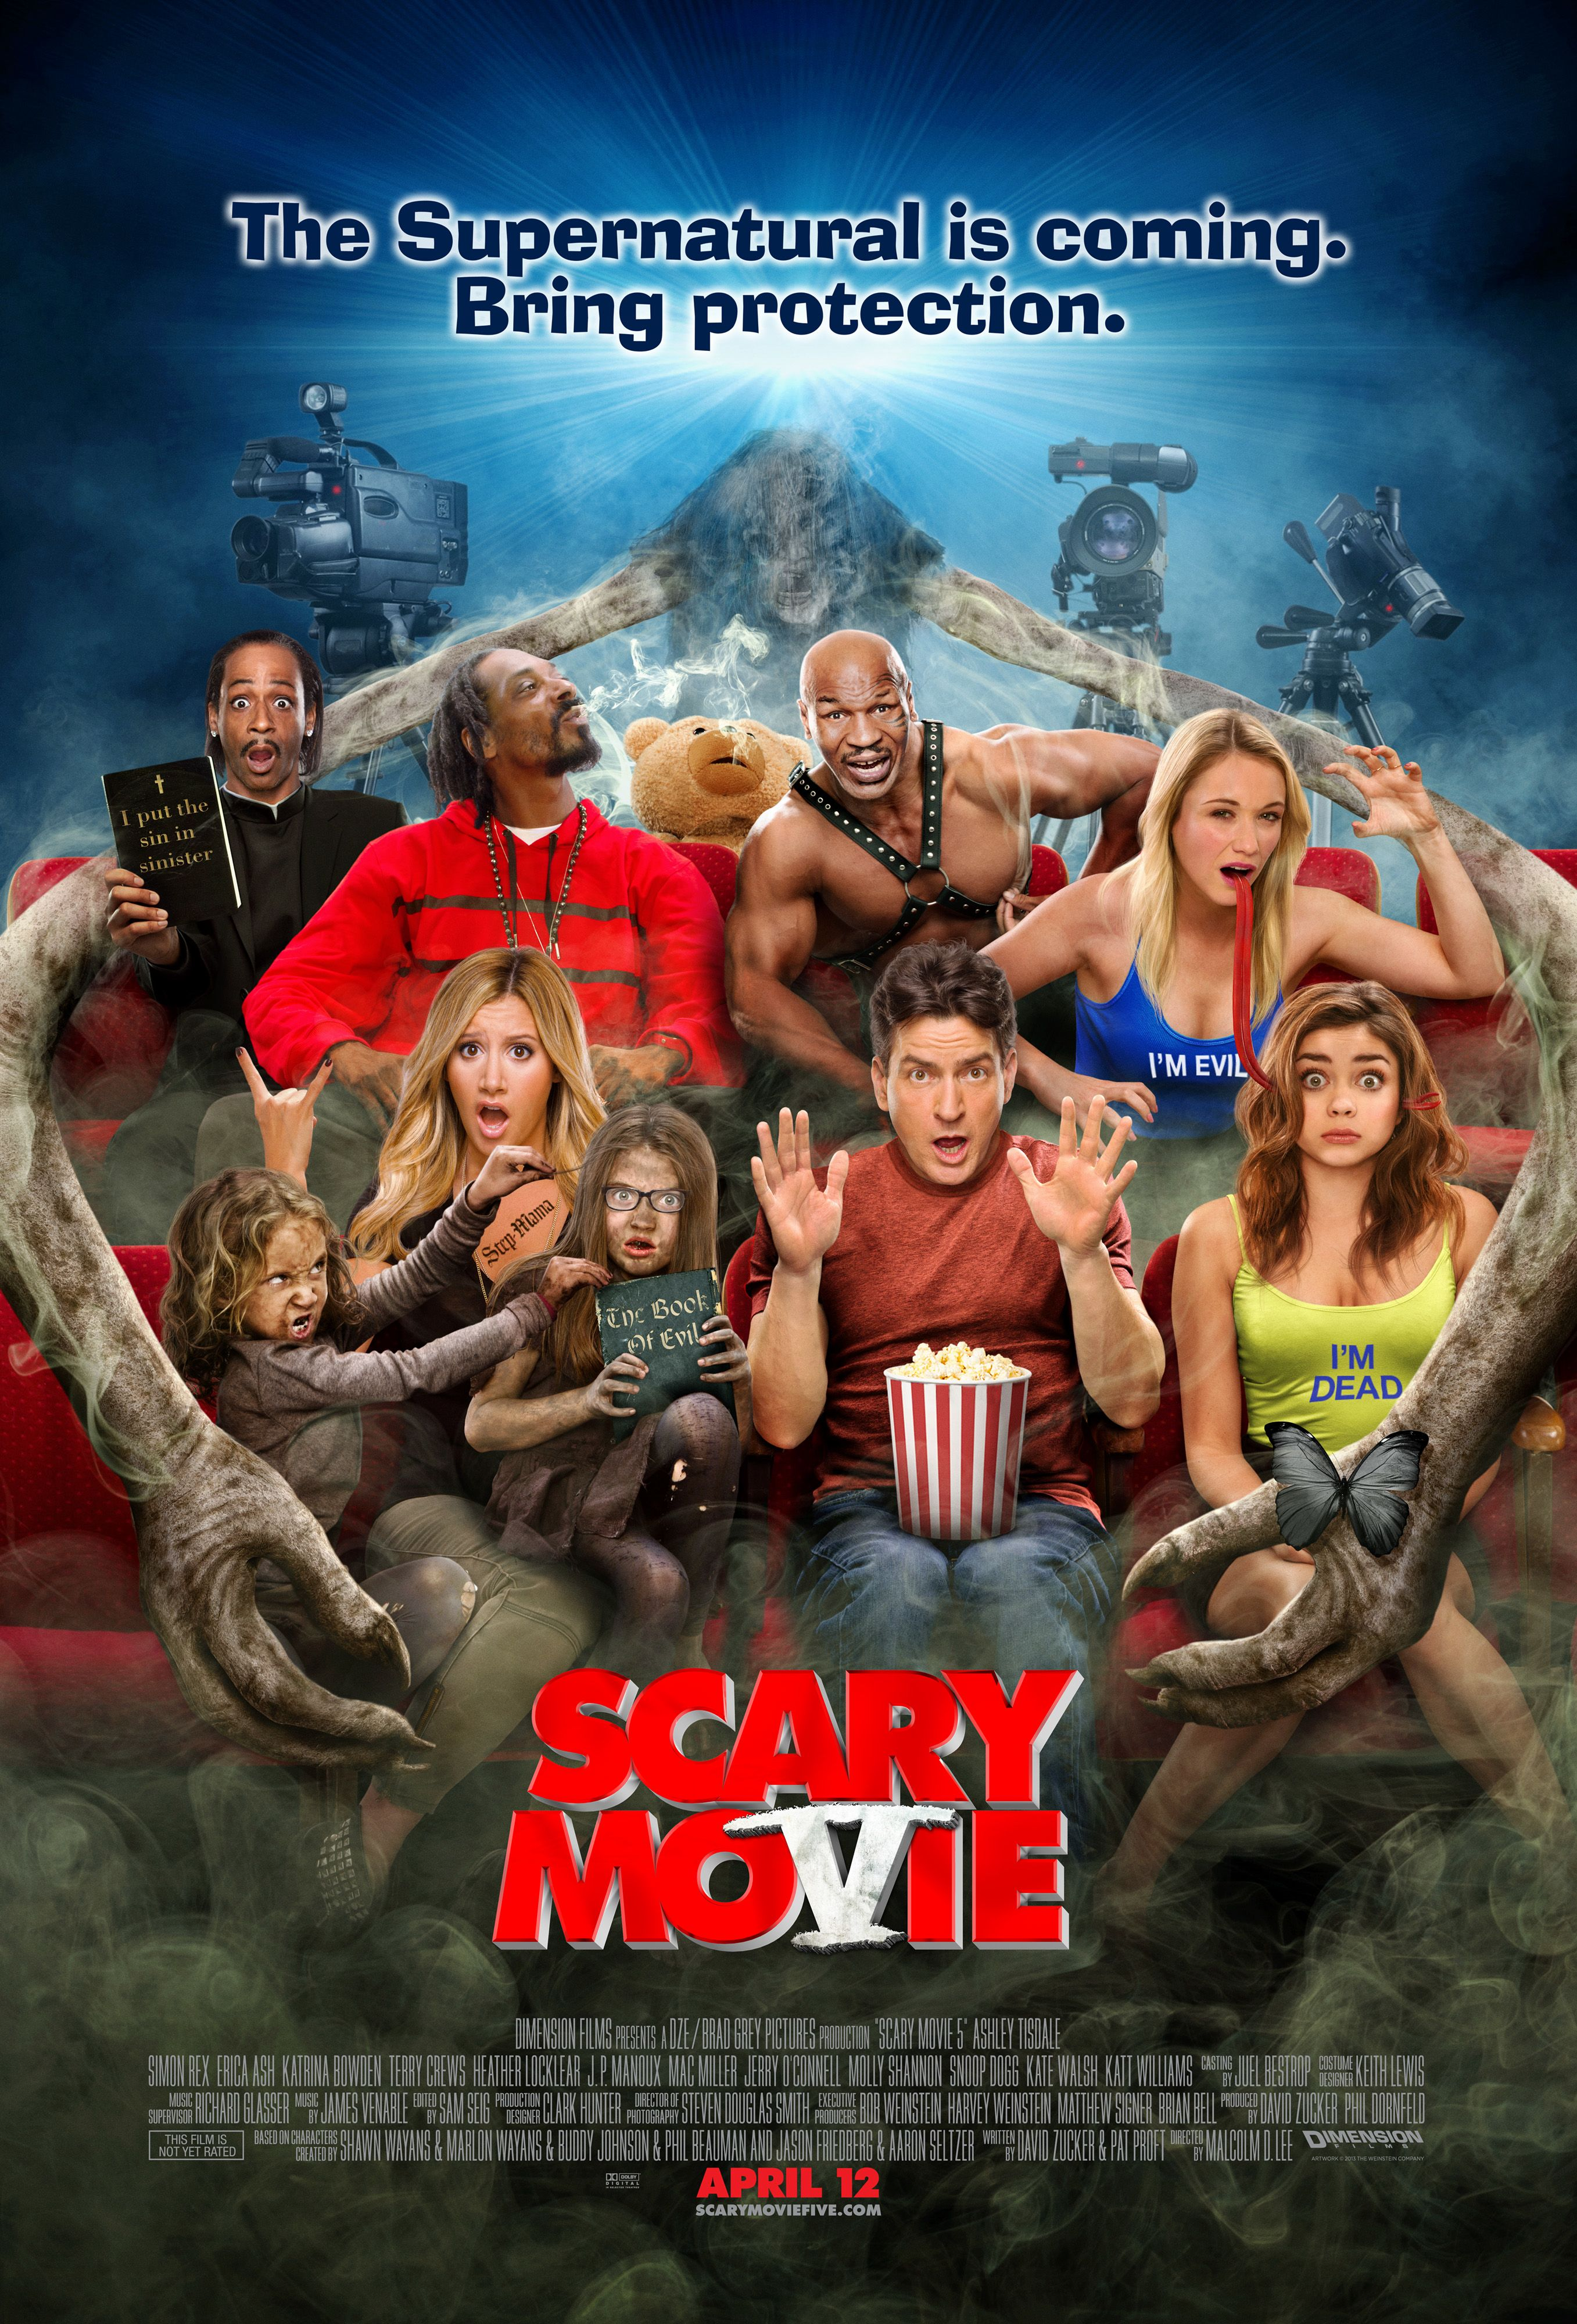 SCARY MOVIE 5 (PG-13)